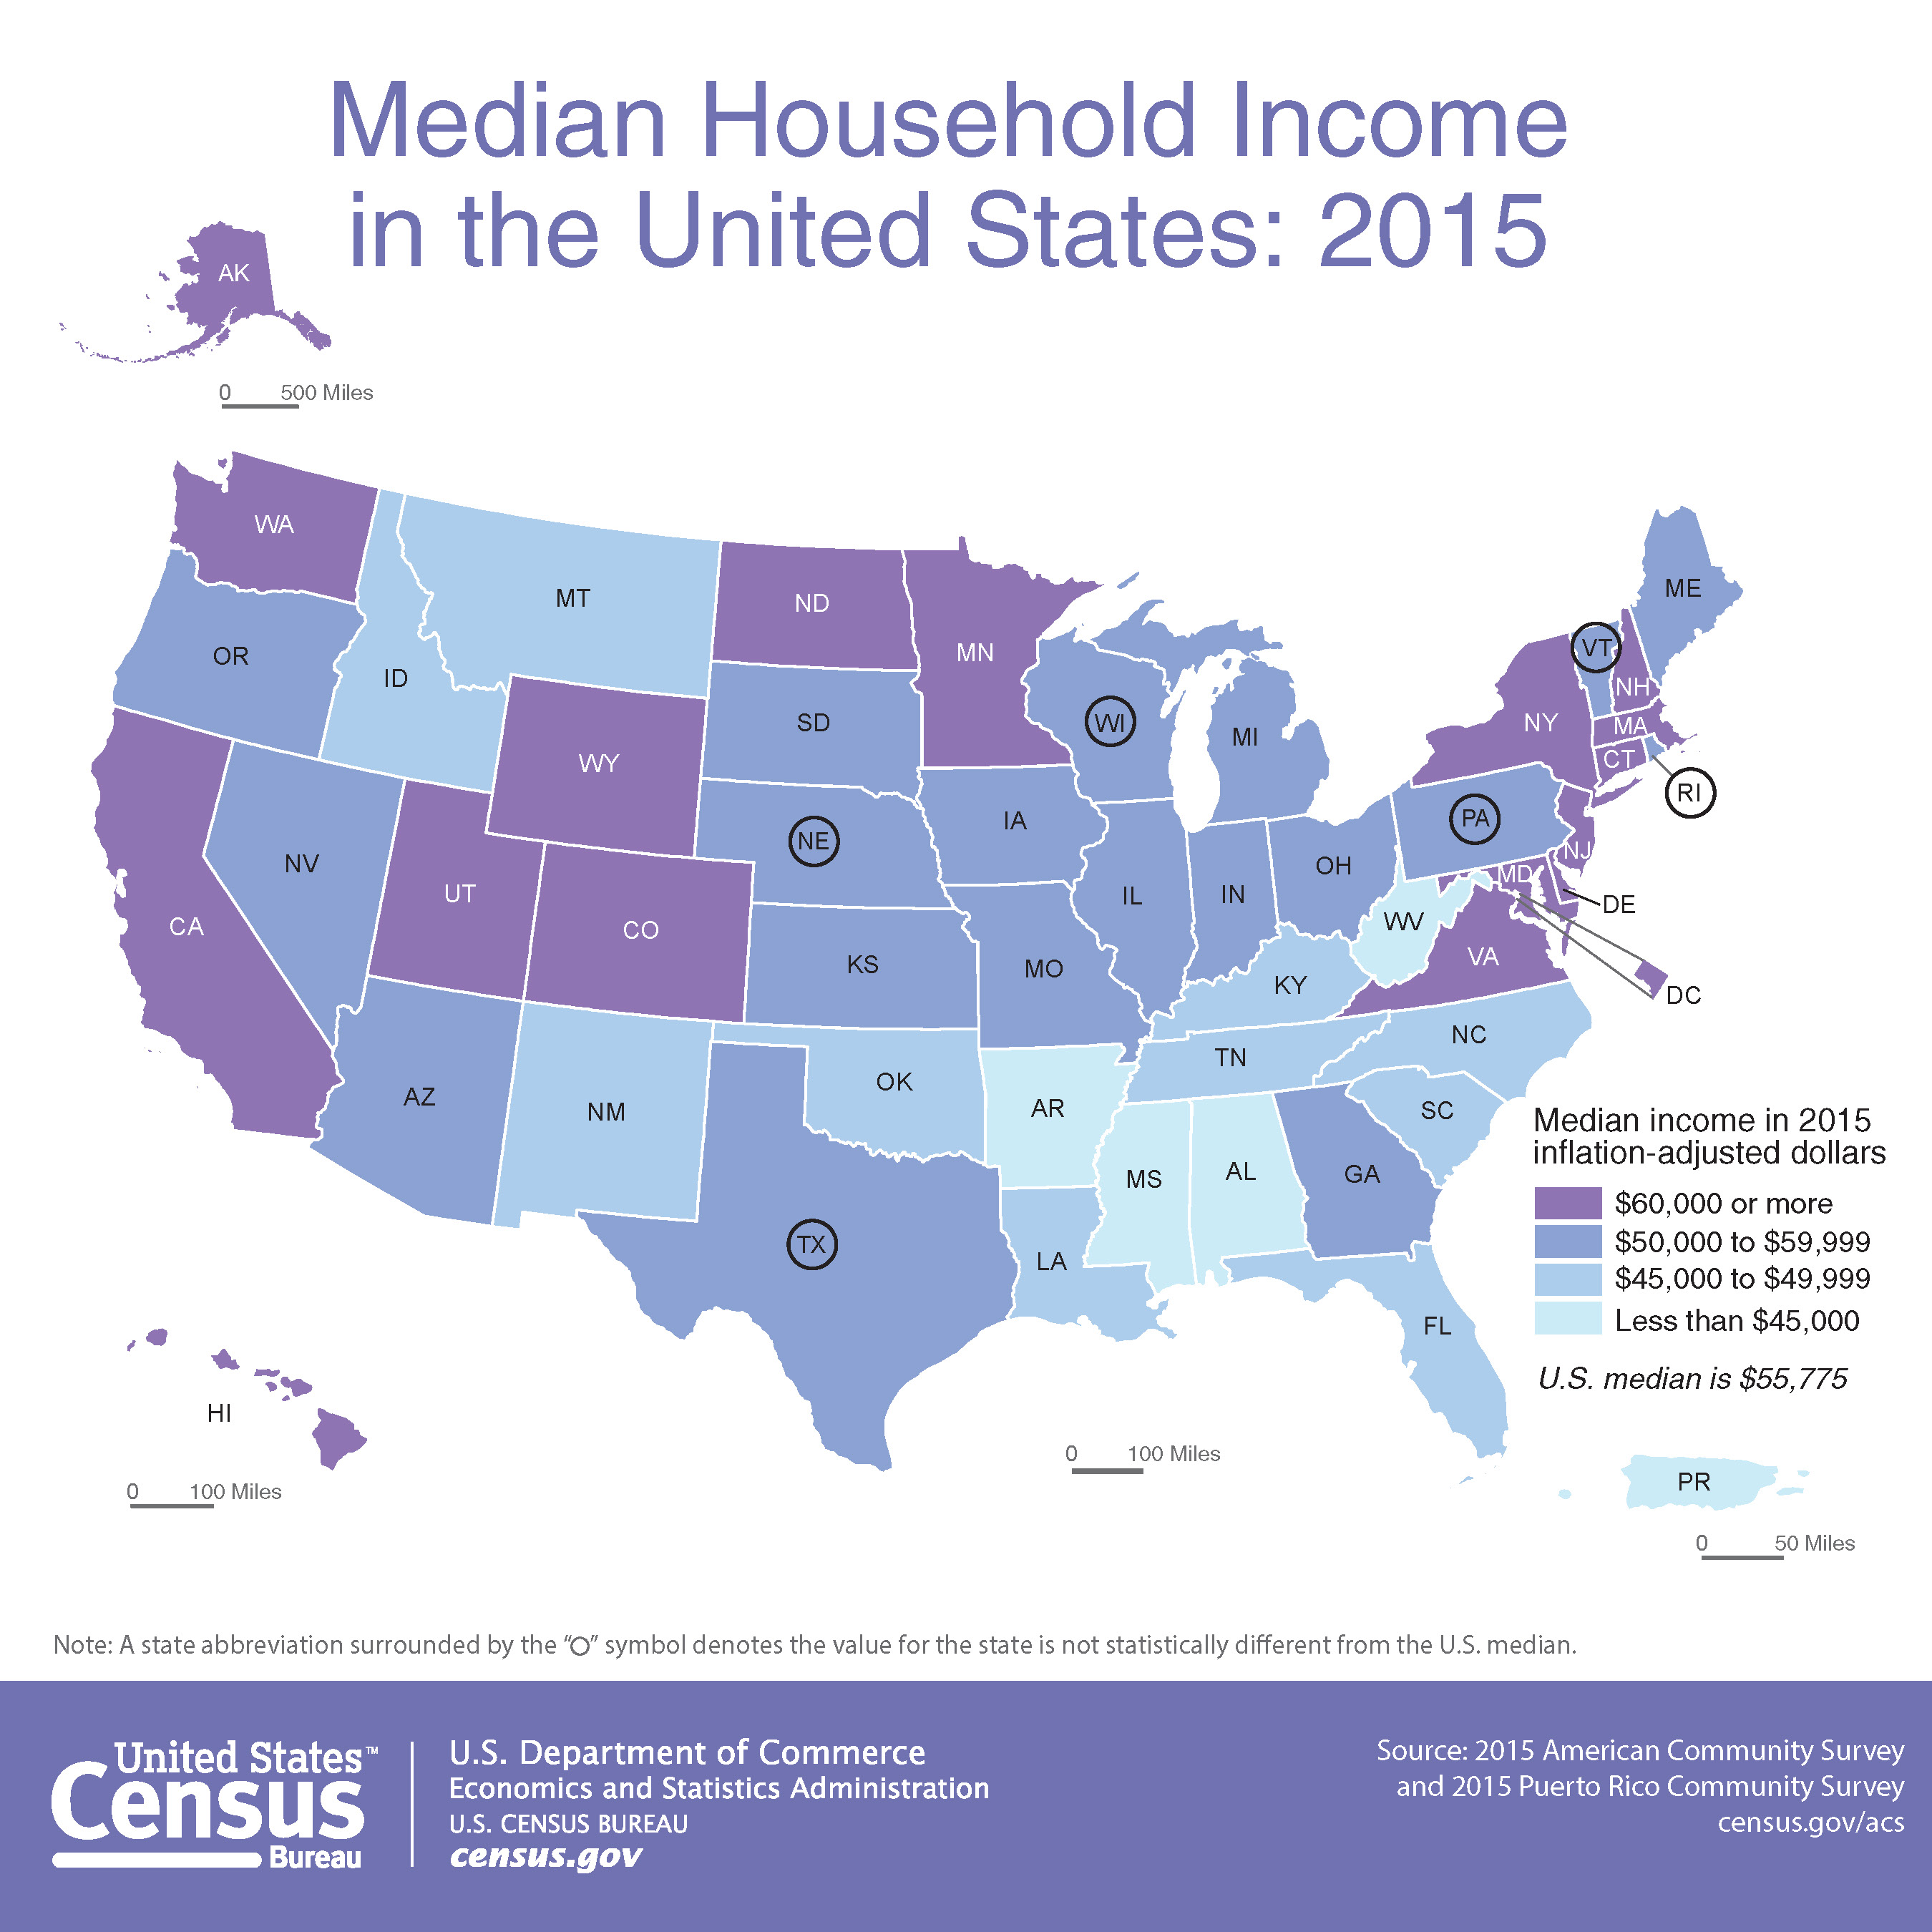 Map Median Household Income In The United States - Map of the us states